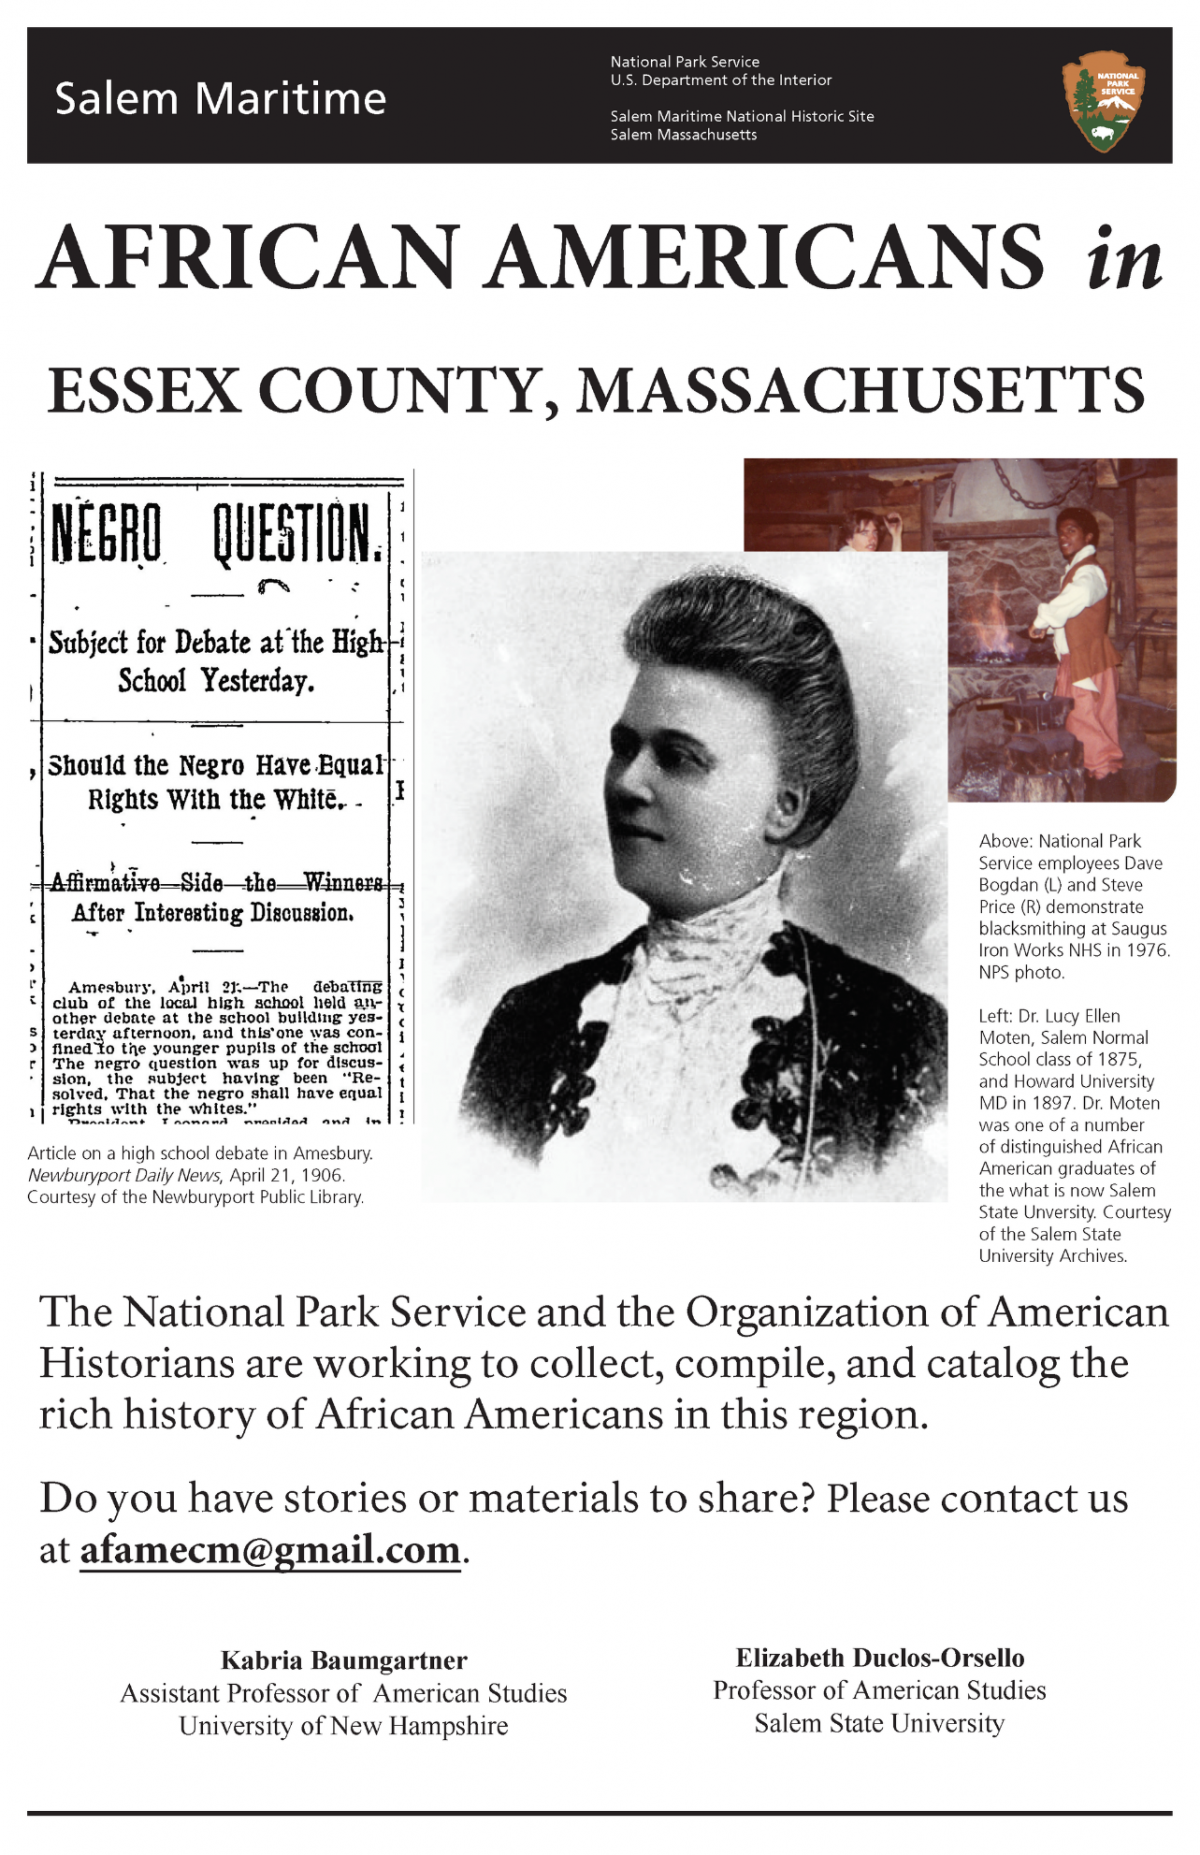 Essex County project flyer